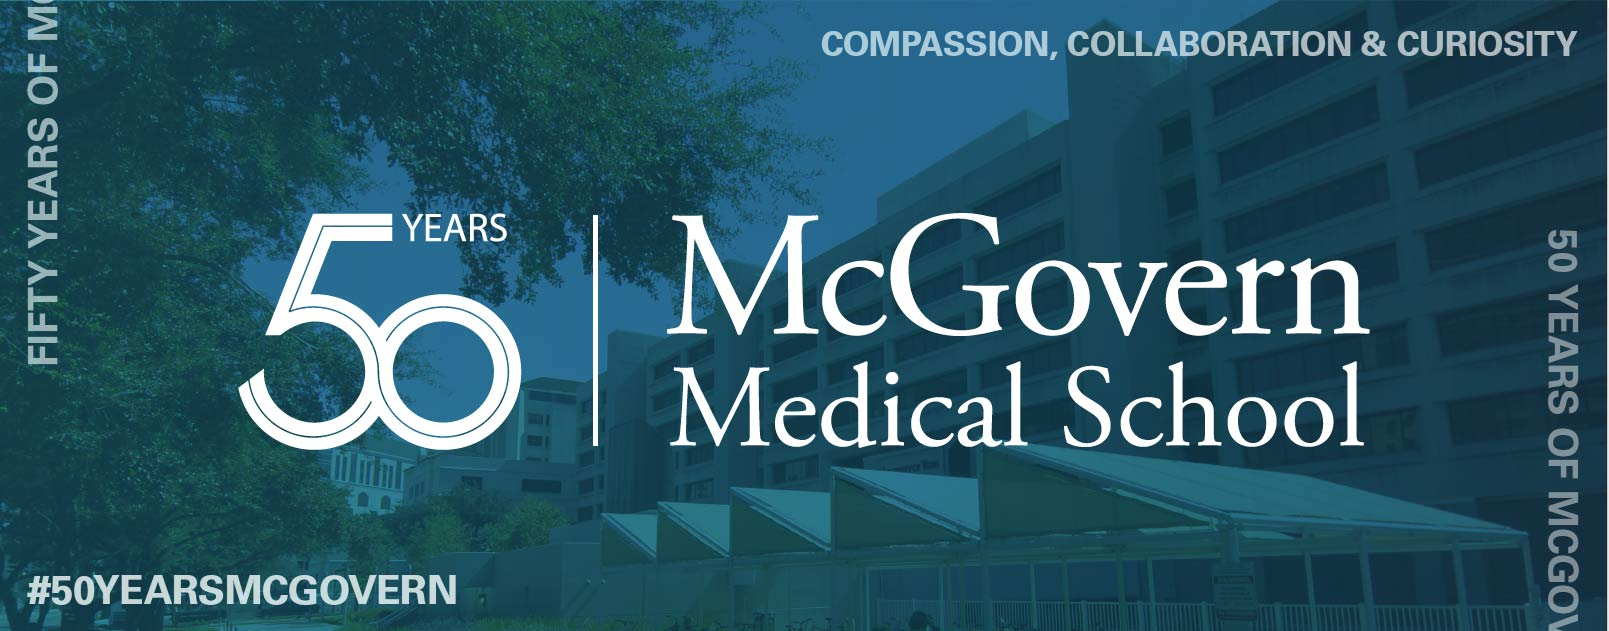 50 Years at McGovern medical school banner